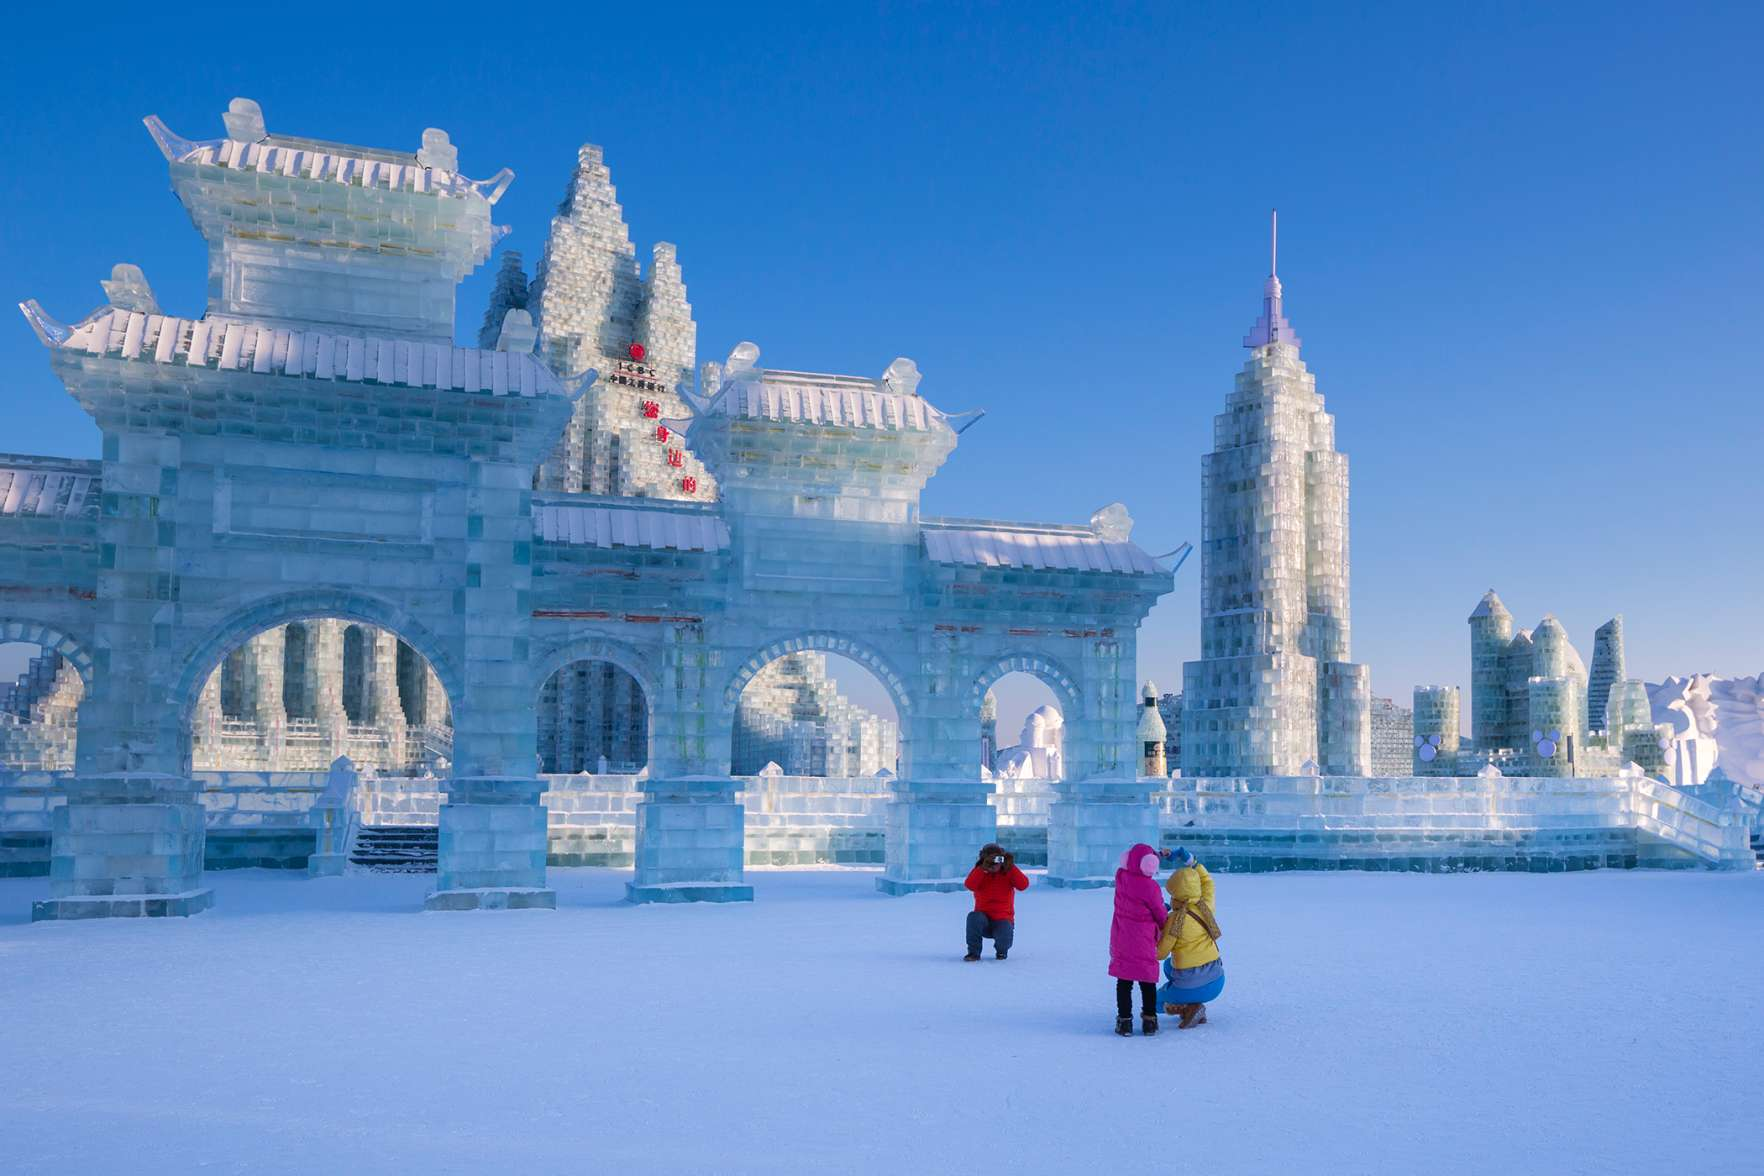 Spectacular ice sculptures at the Harbin Ice and Snow Festival in Heilongjiang Province, Harbin, China